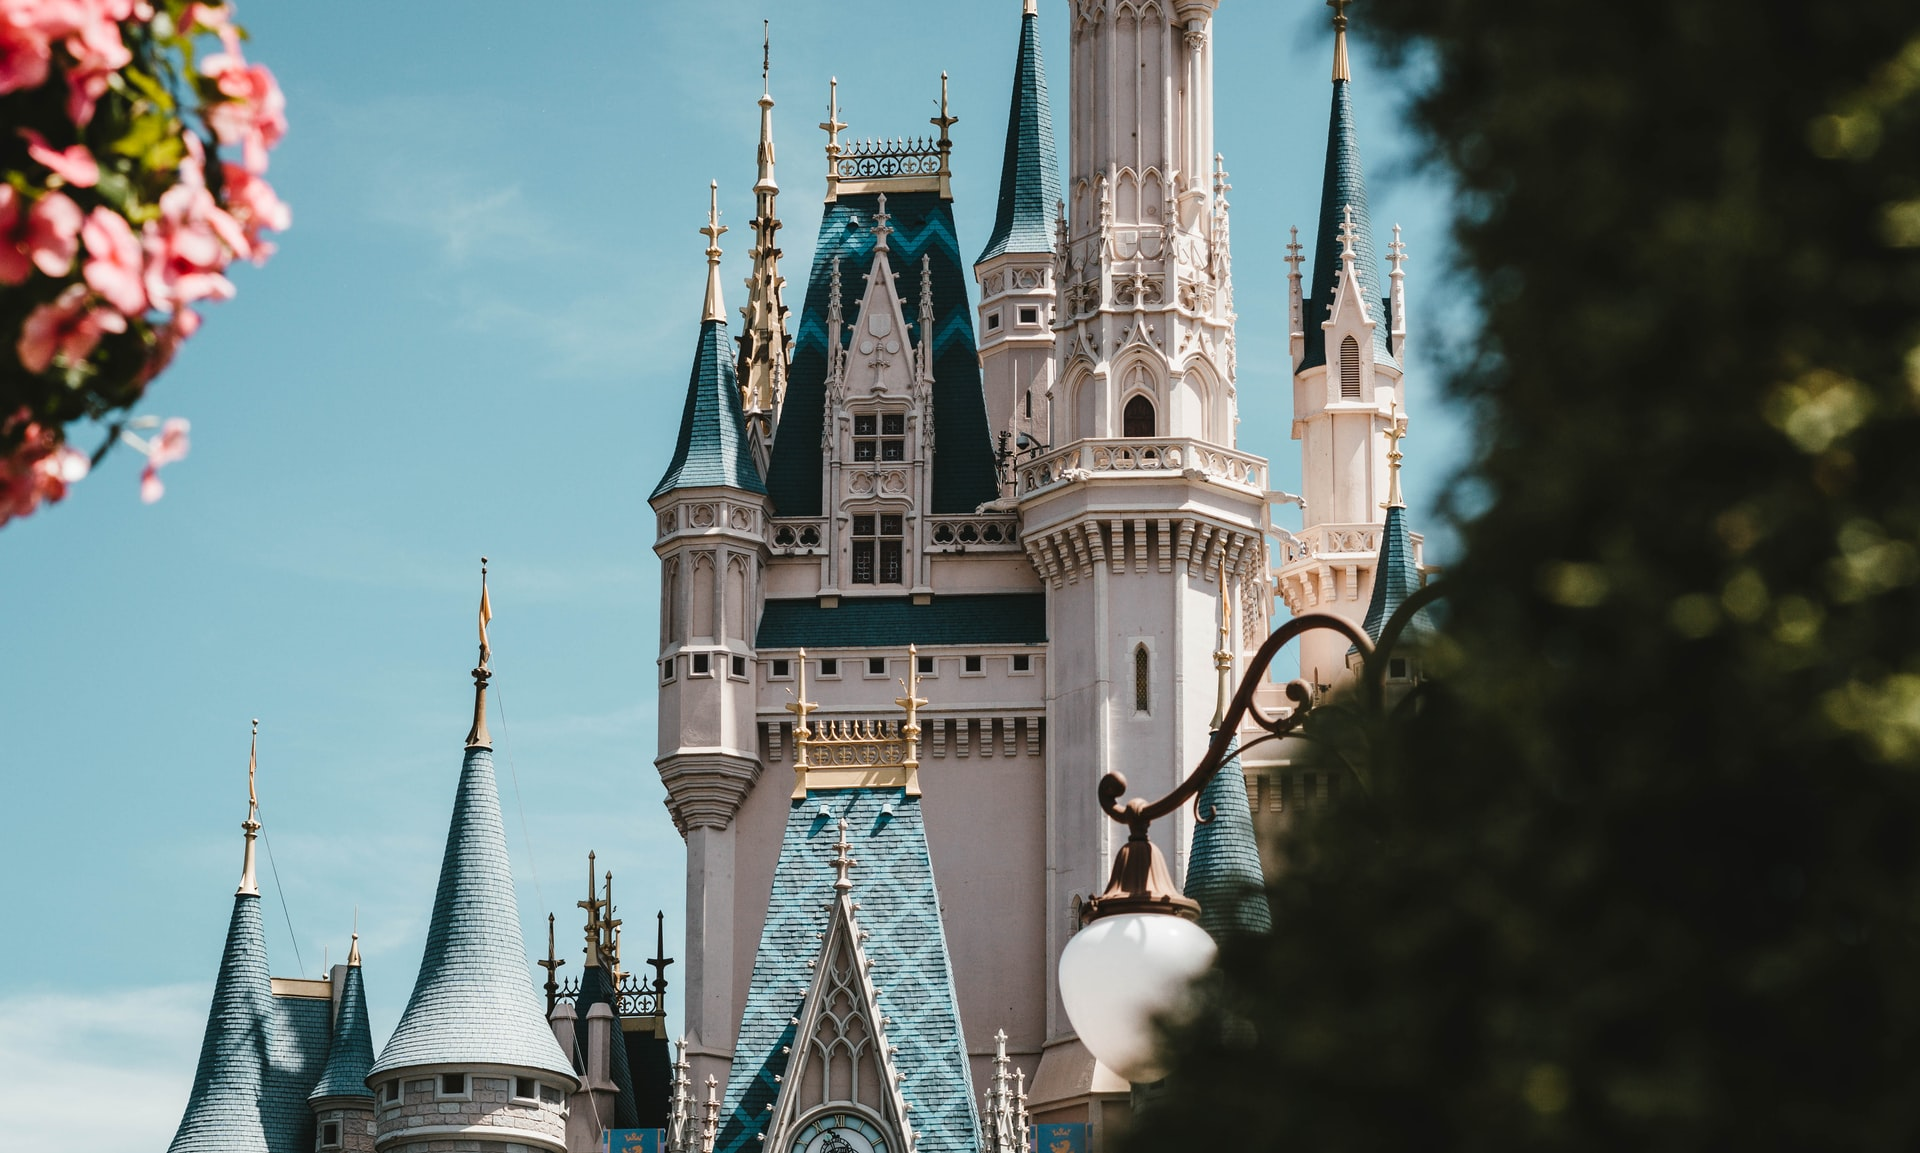 Disney World in Florida reopens a bit — but no rides yet